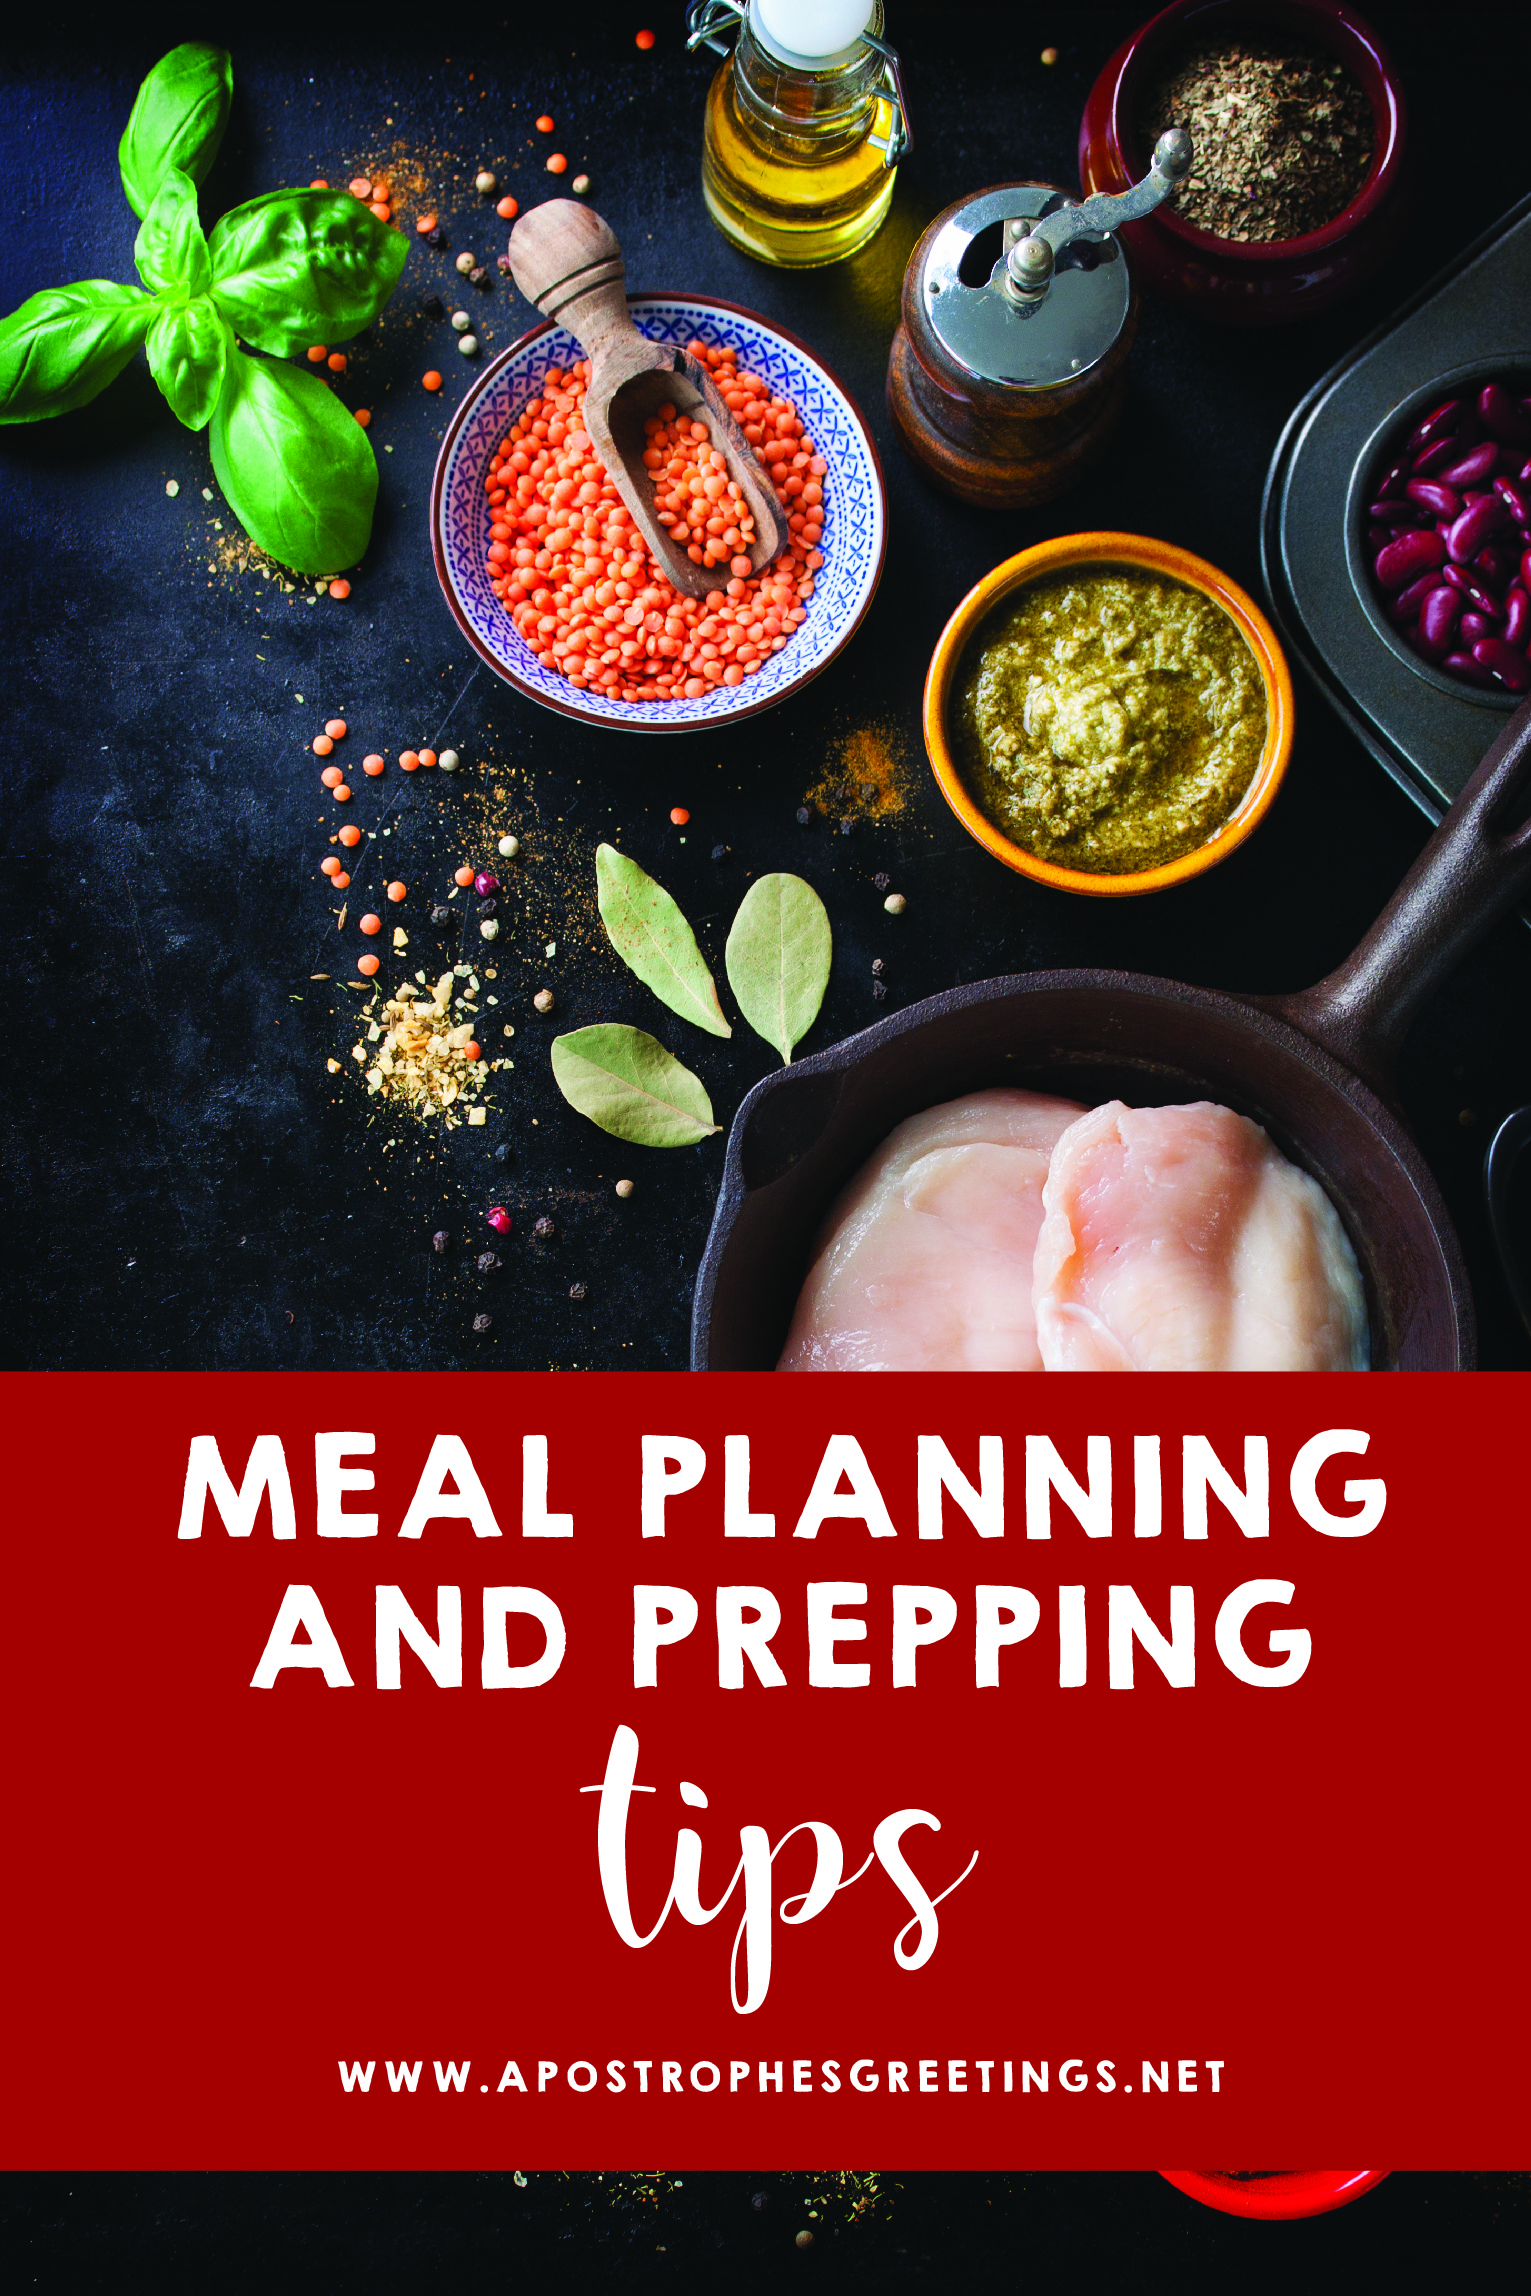 Meal Planning and Meal Prepping Tips for Busy Families